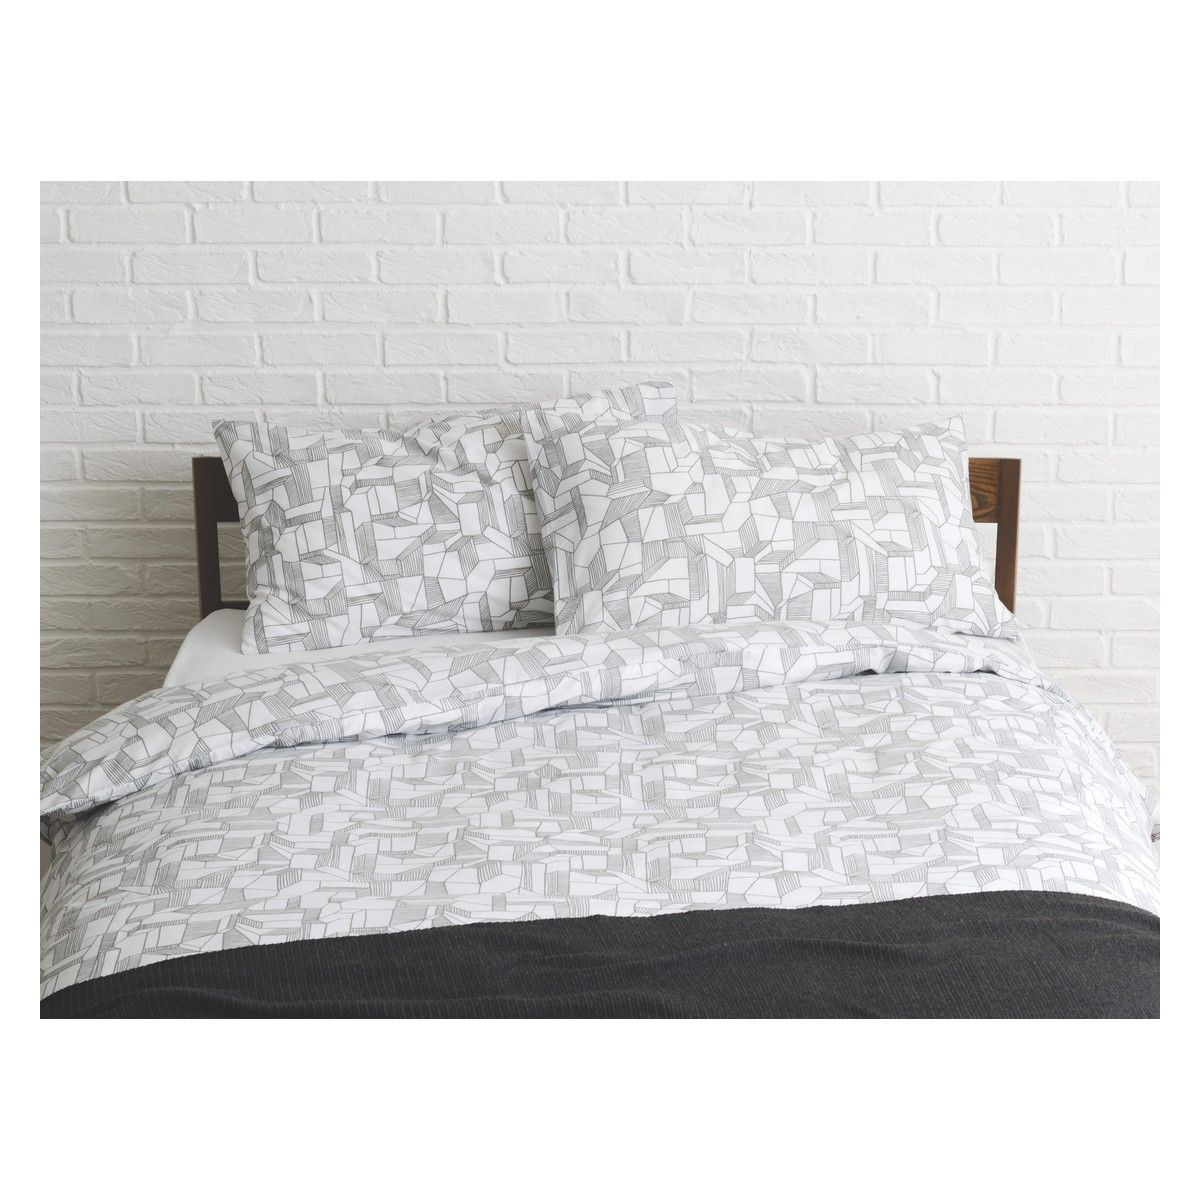 mineral grey patterned double duvet cover set  buy now at habitat  - mineral grey patterned double duvet cover set  buy now at habitat uk